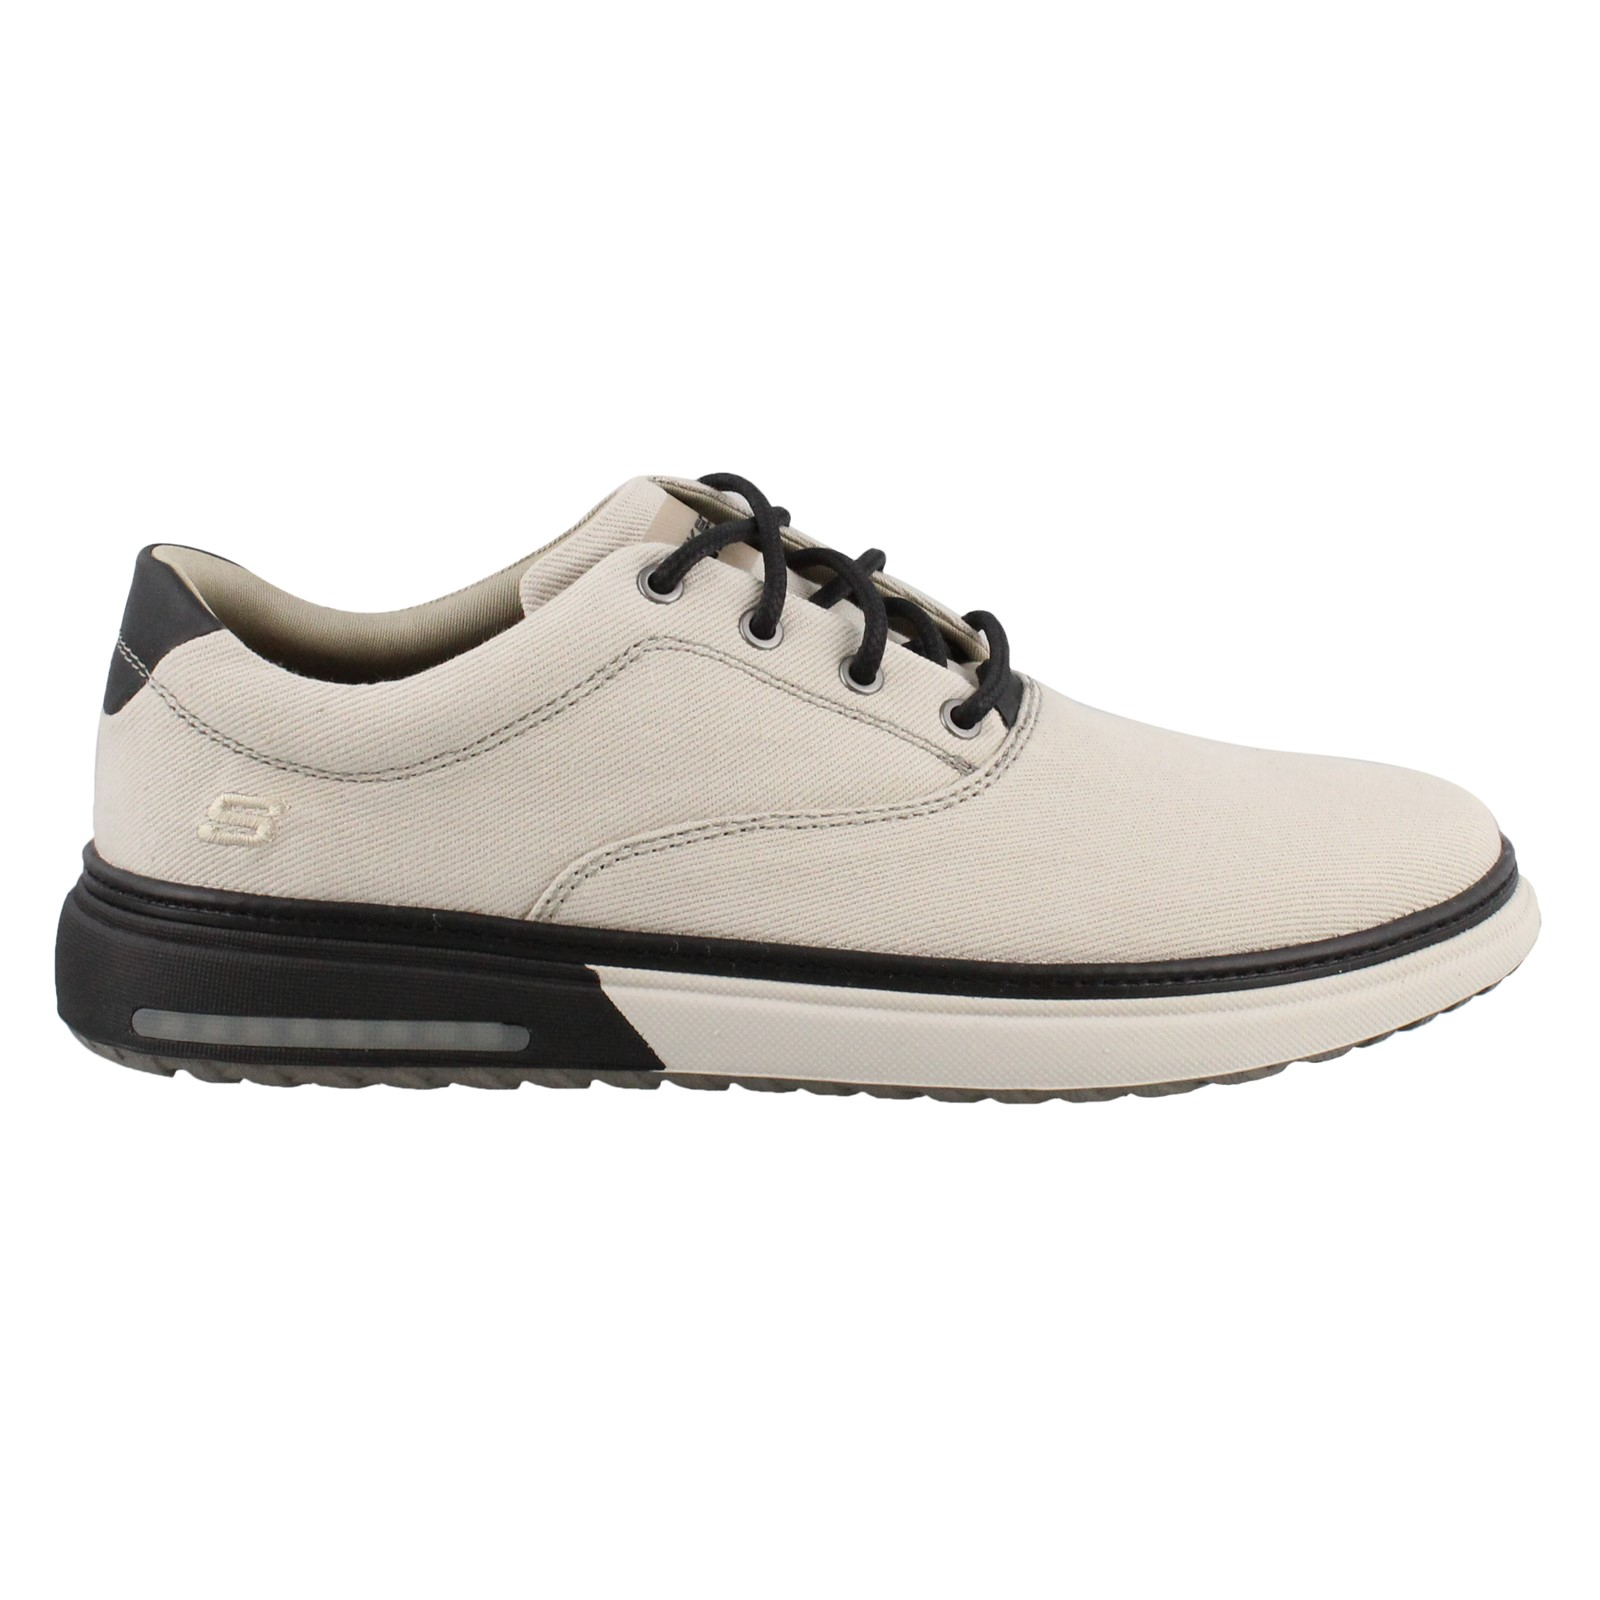 Men's Skechers, Folten Verome Lace up Shoes